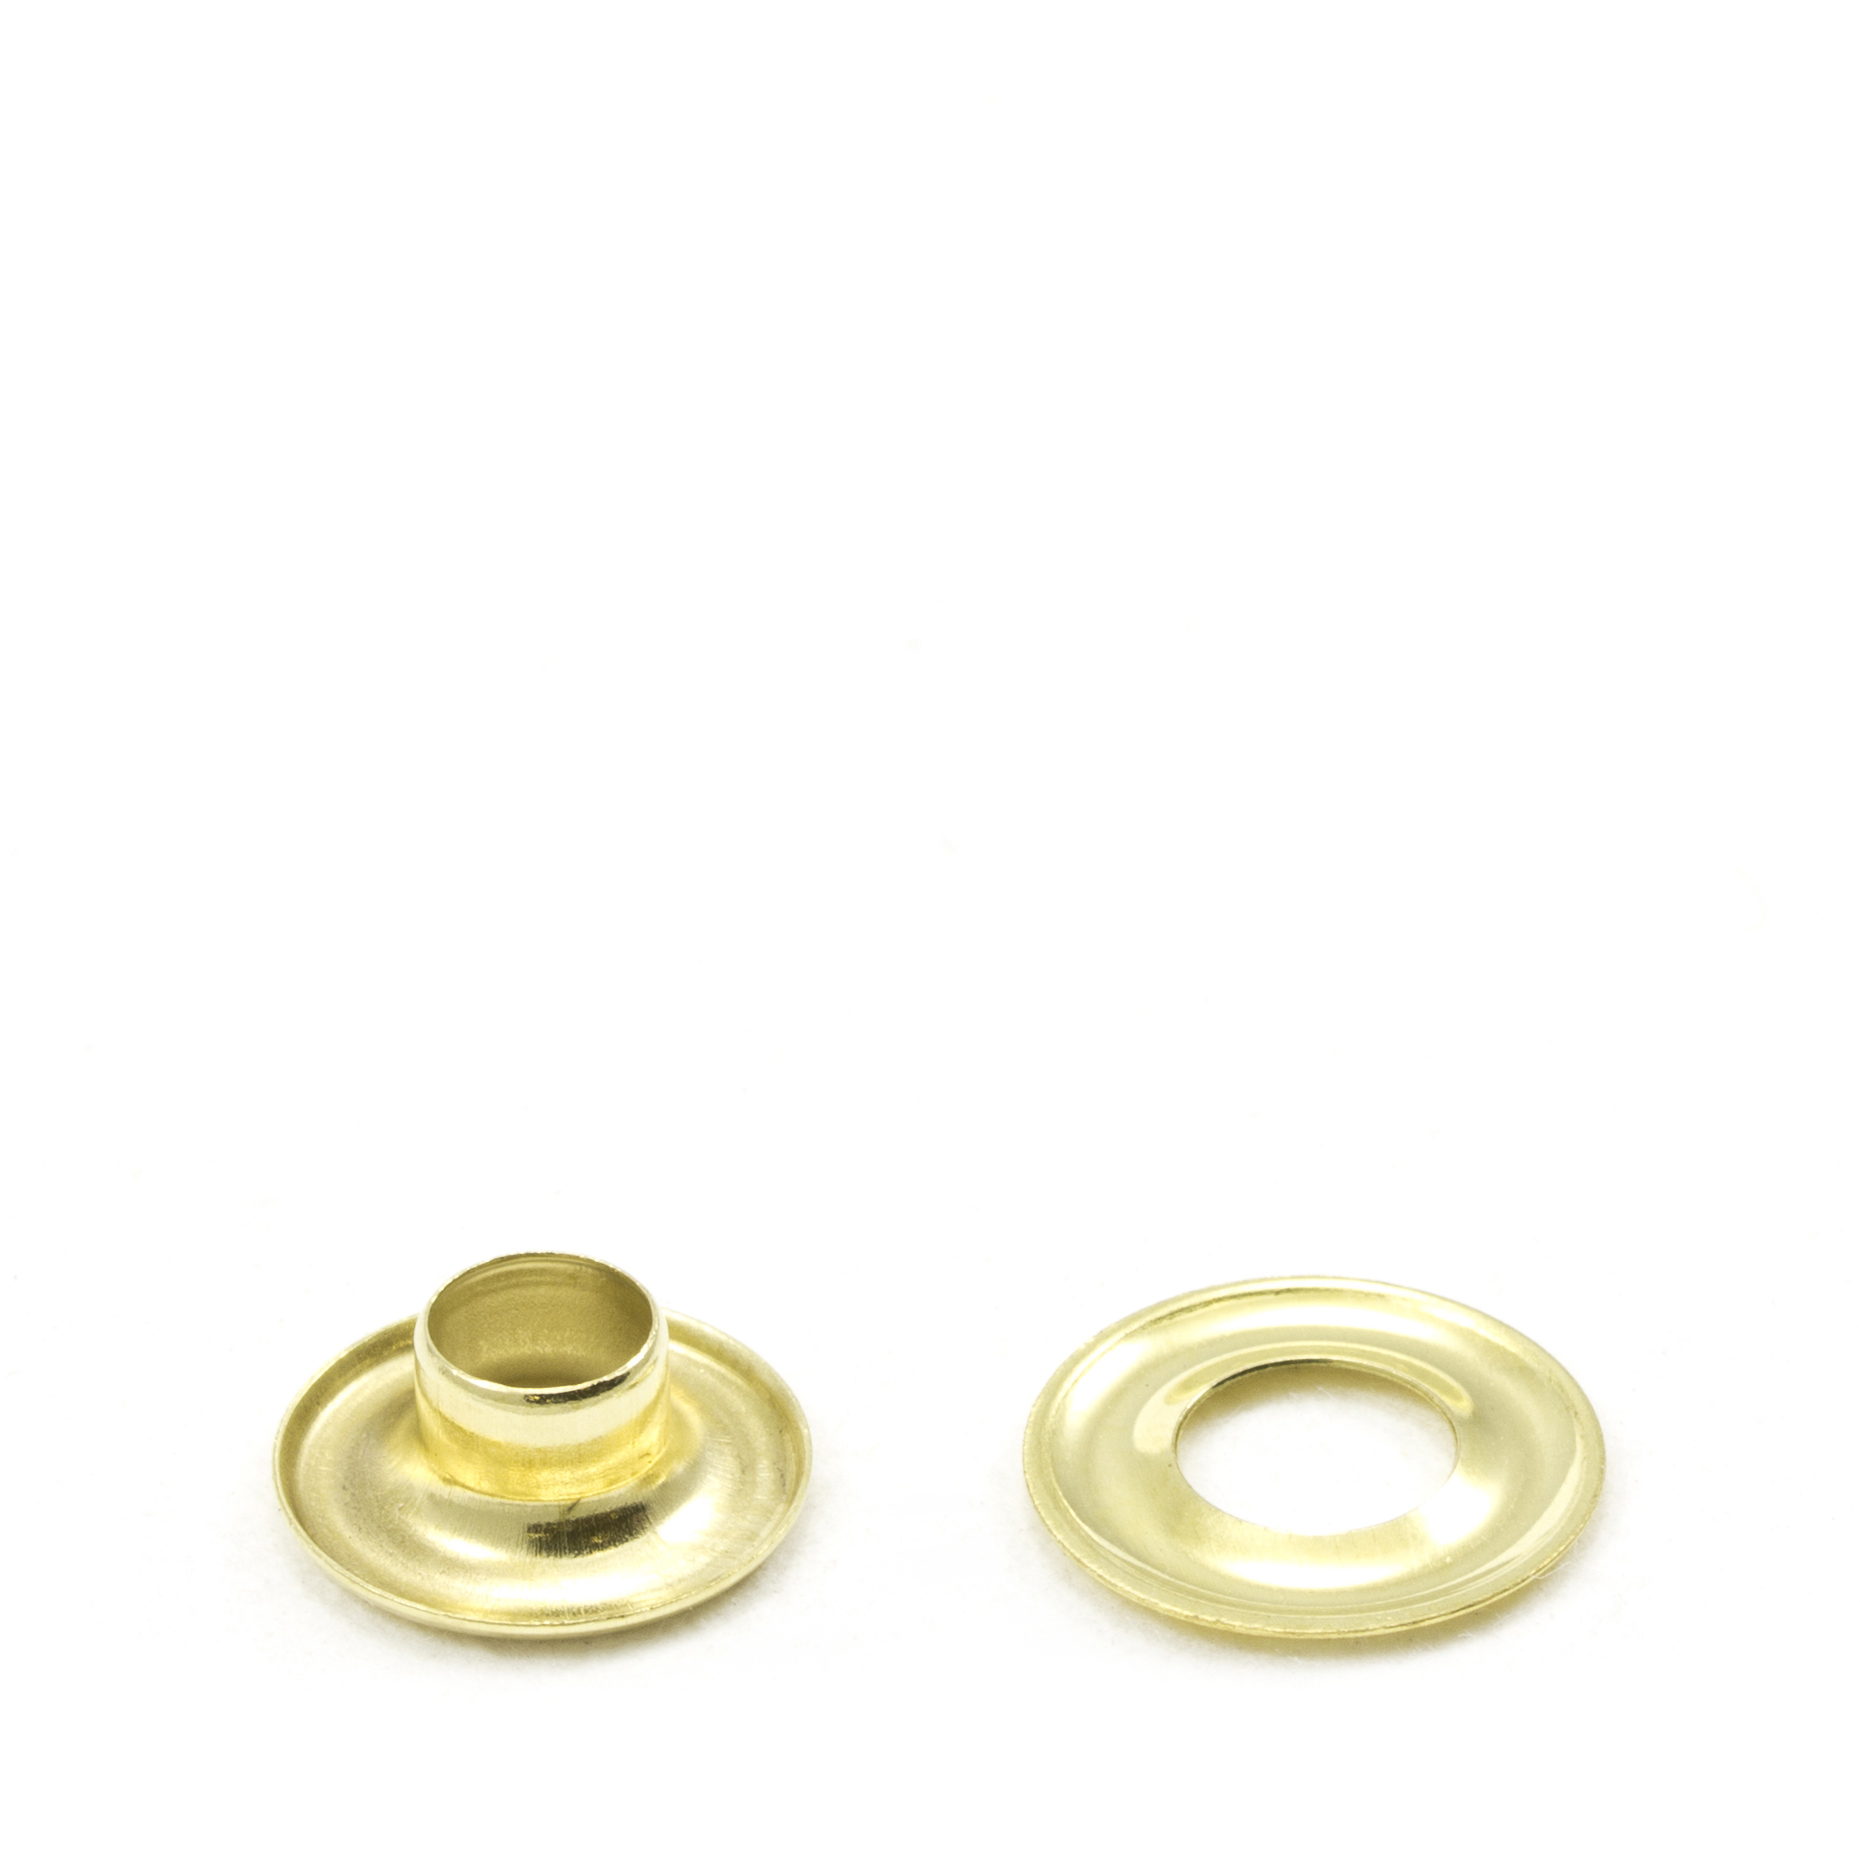 Grommet with Plain Washer #00 Brass 3/16